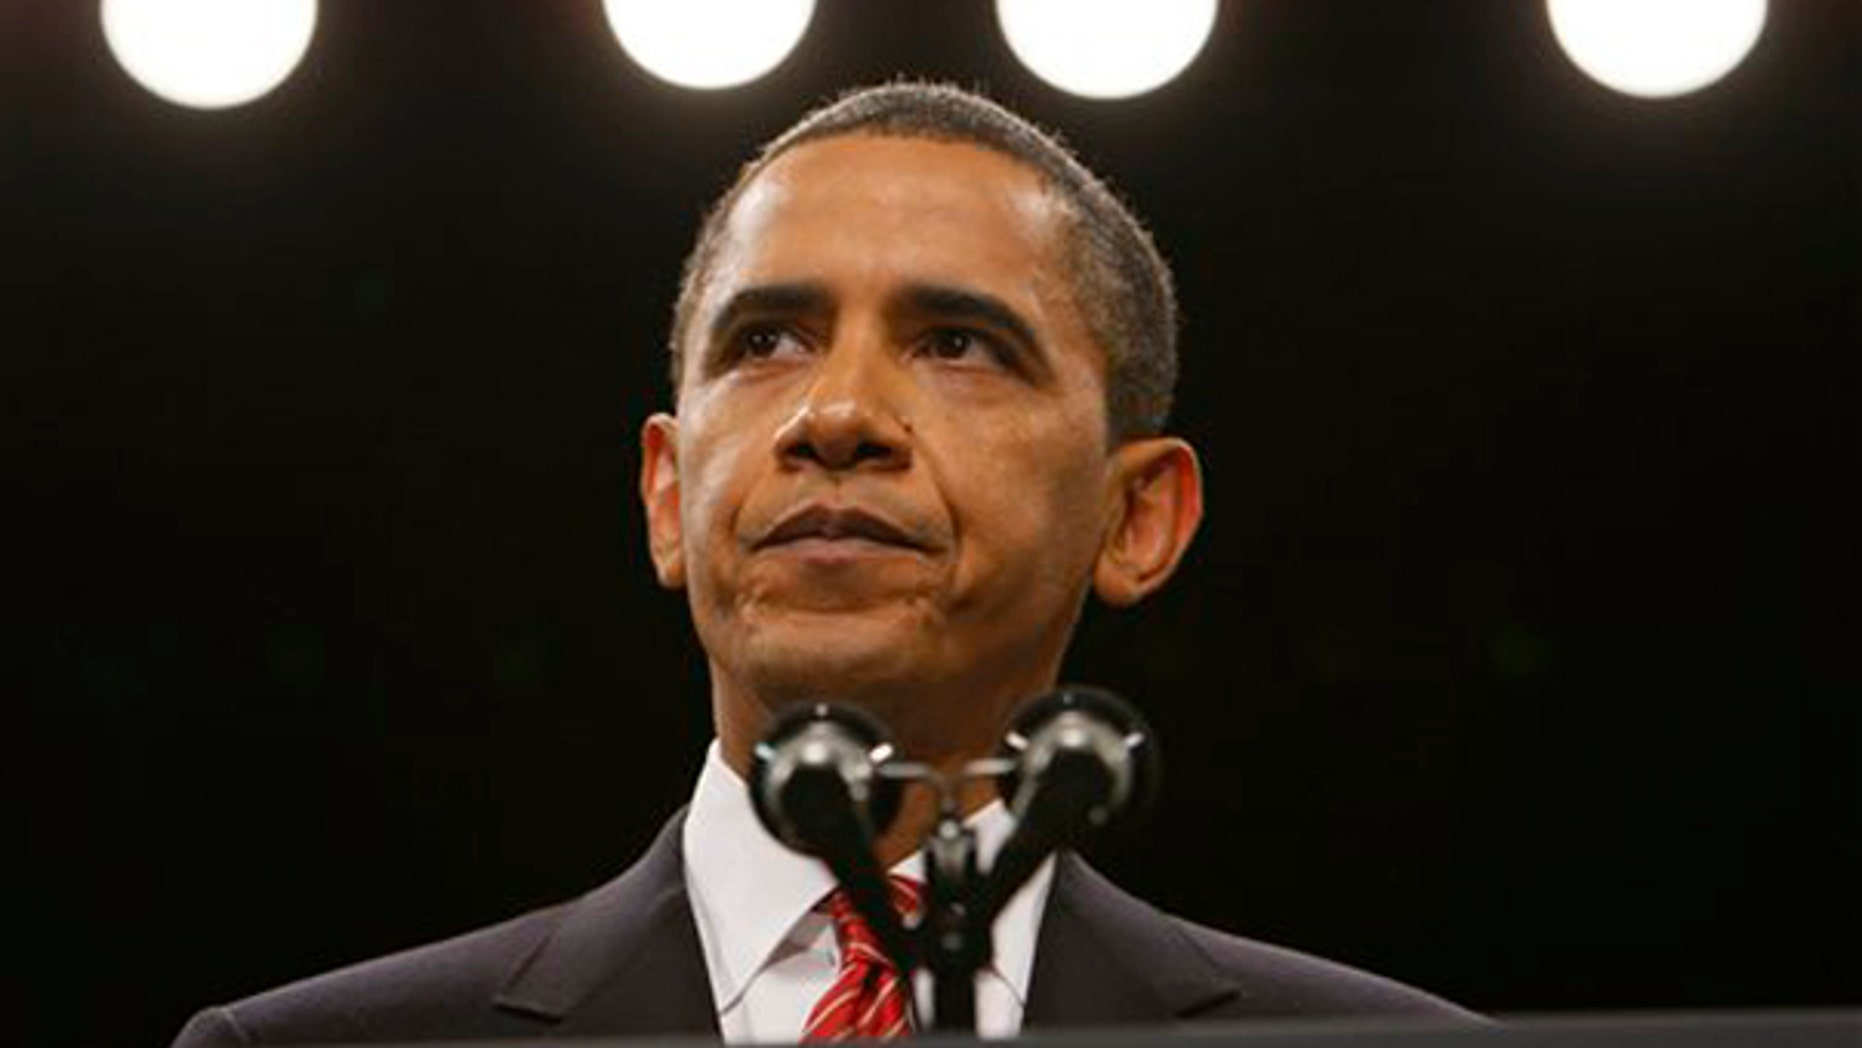 President Obama speaks at West Point. Under pressure from Republicans and an impatient public to fix the sputtering economic recovery, Obama is refocusing on this politically potent issue by talking job creation with business and labor leaders at the White House. Dec. 1, 2009. (AP)